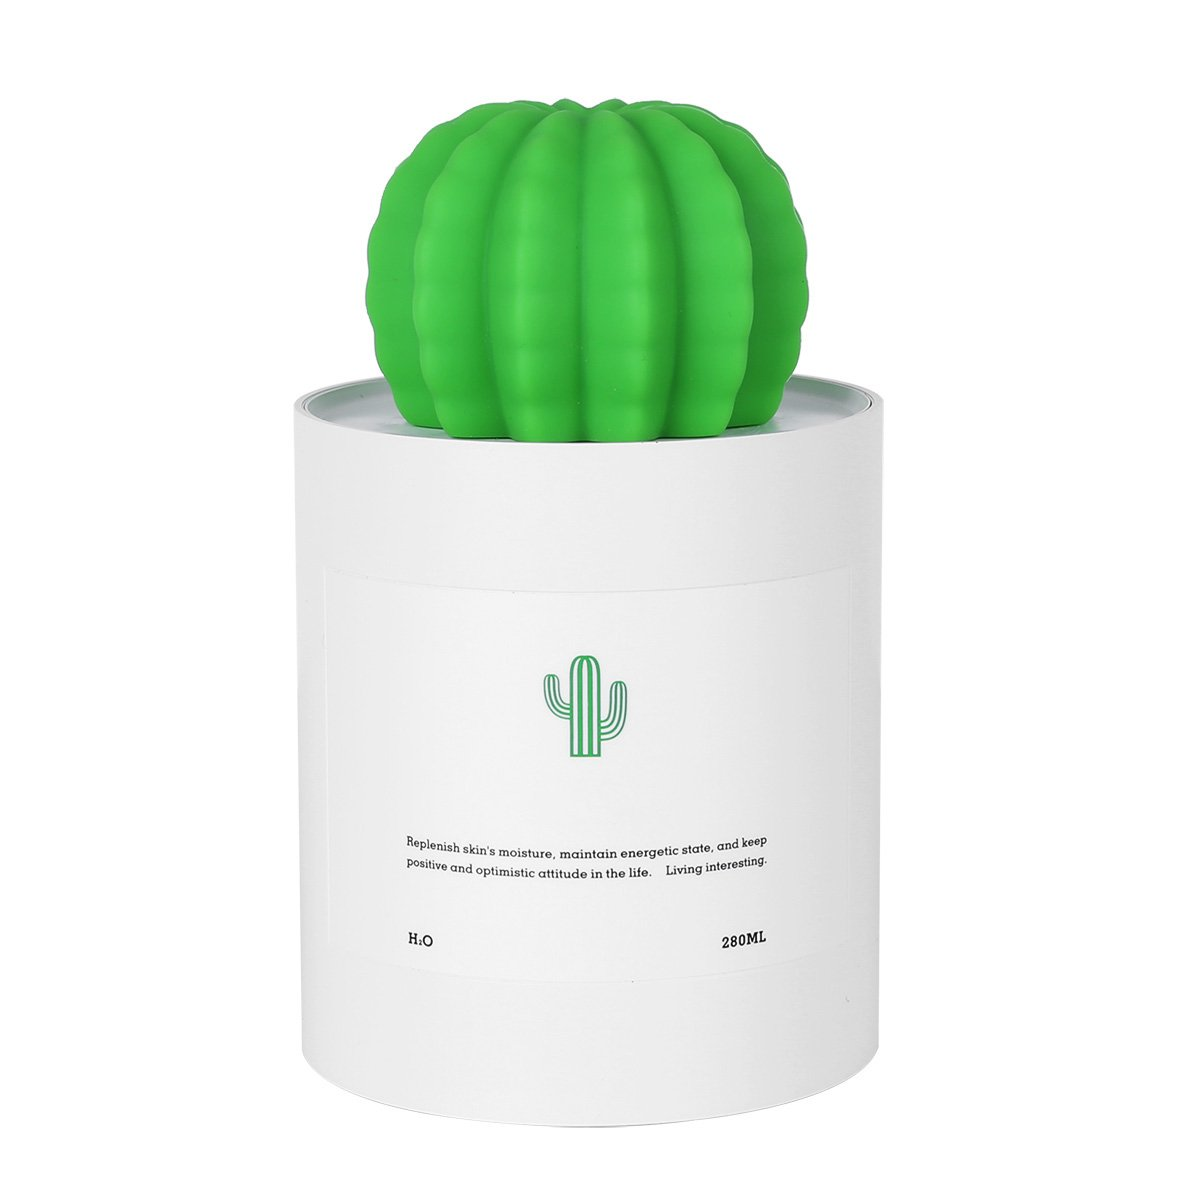 Freebily Portable 280ML Mini Size USB Cactus Humidifier Air Diffuser for Bedroom Baby Room Yoga Office Spa Coffee Bar Travel Desktop White One Size